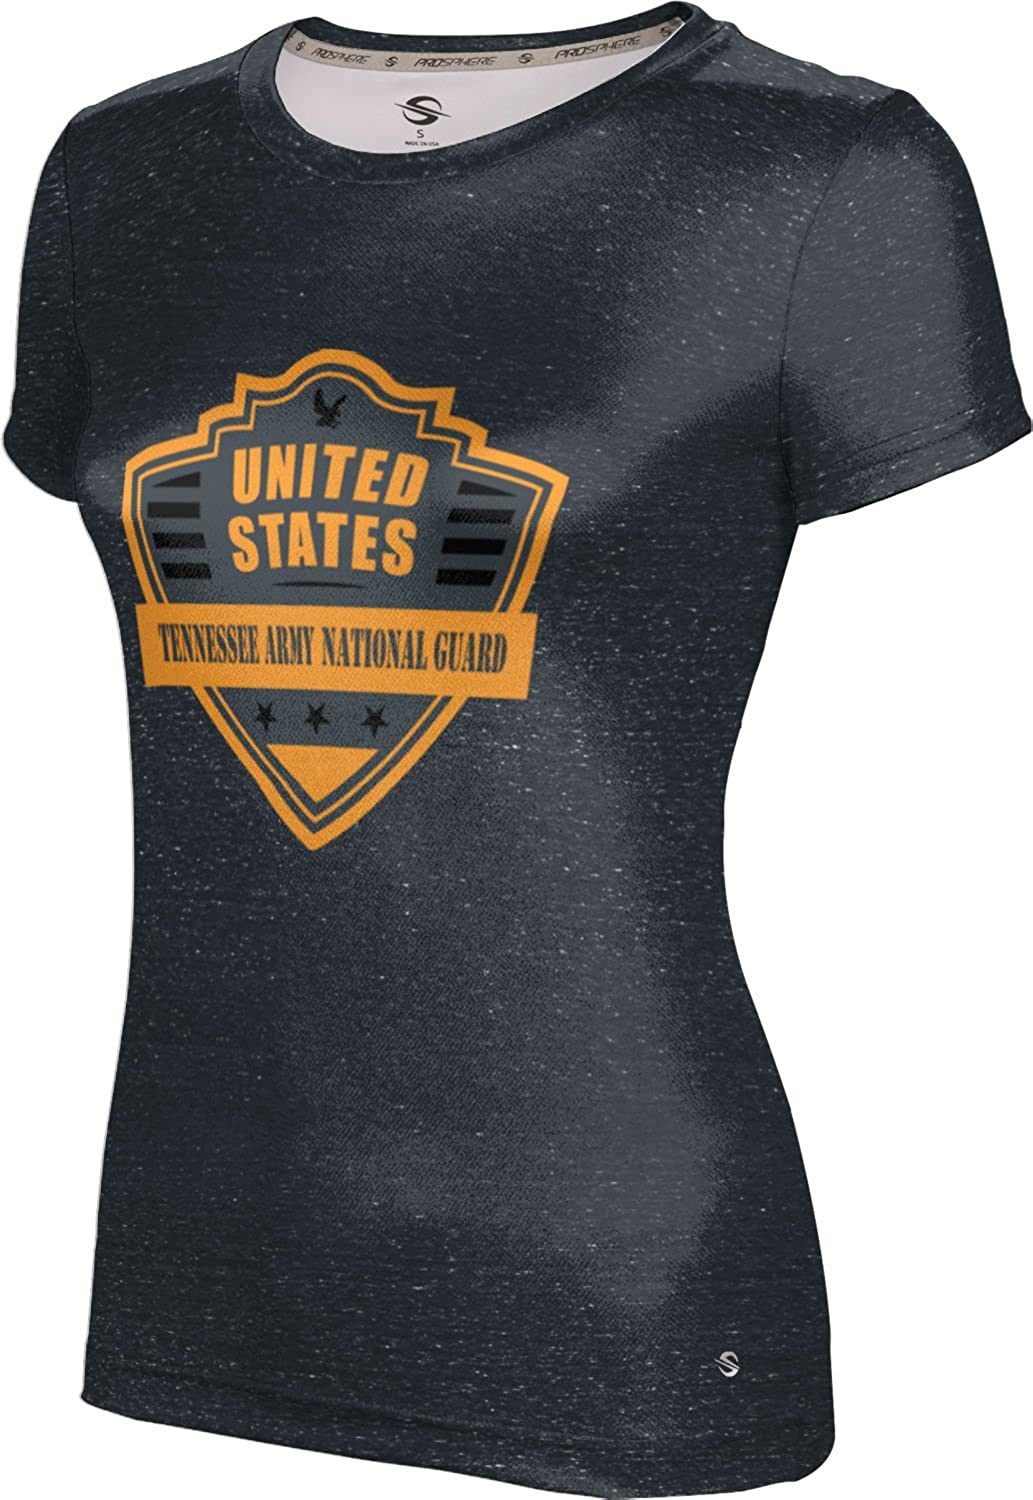 ProSphere Women's Tennessee Army National Guard Military Heather Tech Tee